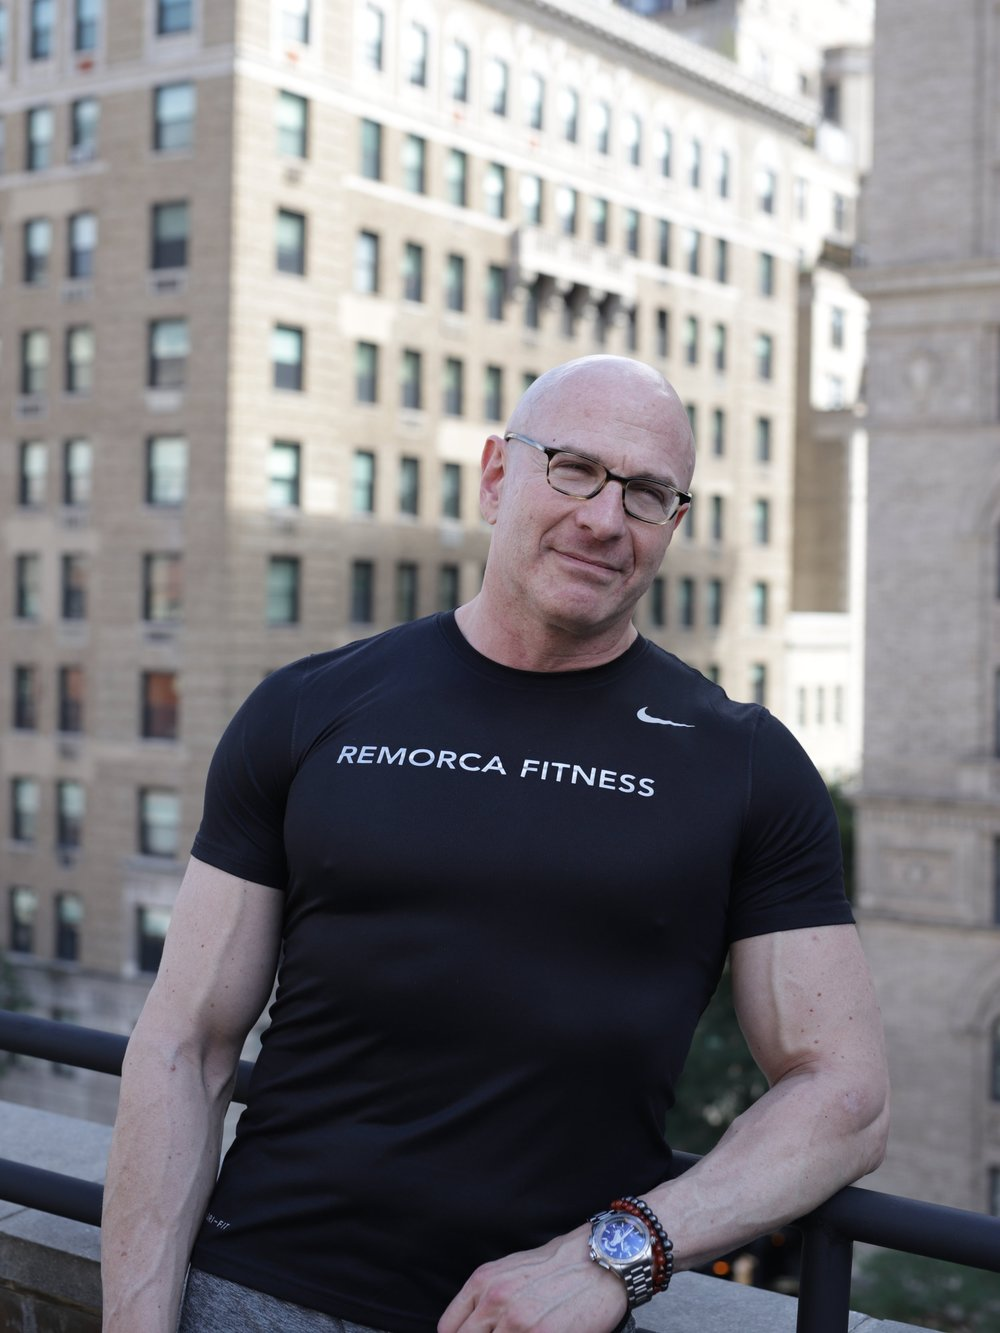 MICHAEL - NASM CERTIFIED PERSONAL TRAINER PRECISION NUTRITION LEVEL KBA LEVEL 1 KETTLEBELL FUNCTIONAL MOVEMENT SYSTEMS LEVEL 1 TRIGGER POINT MYOFACIAL COMPRESSION TECHNIQUESCERTIFICATIONS:EDUCATION:SPECIALTY/EXPERTISE:FITNESS HOBBIES:NON FITNESS THING ABOUT ME